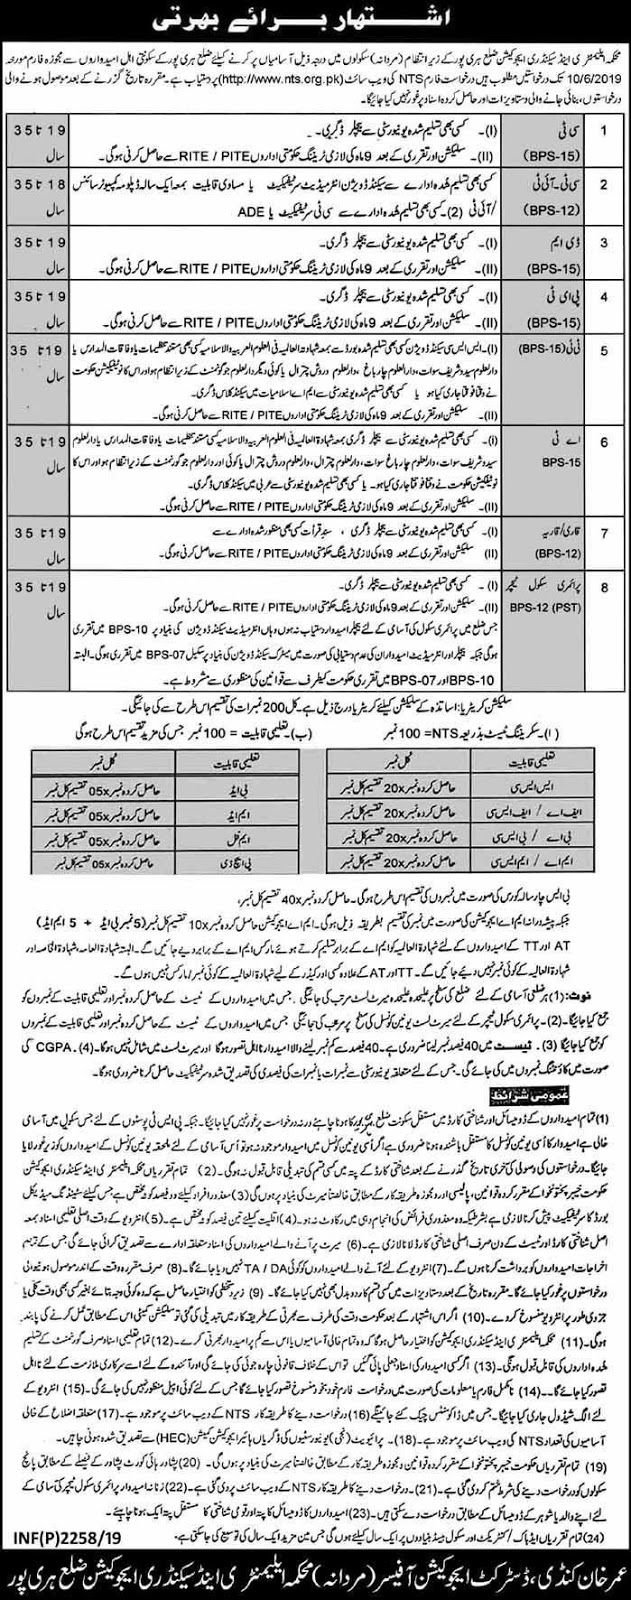 NTS Jobs in Elementary & Secondary Education Haripur 2019